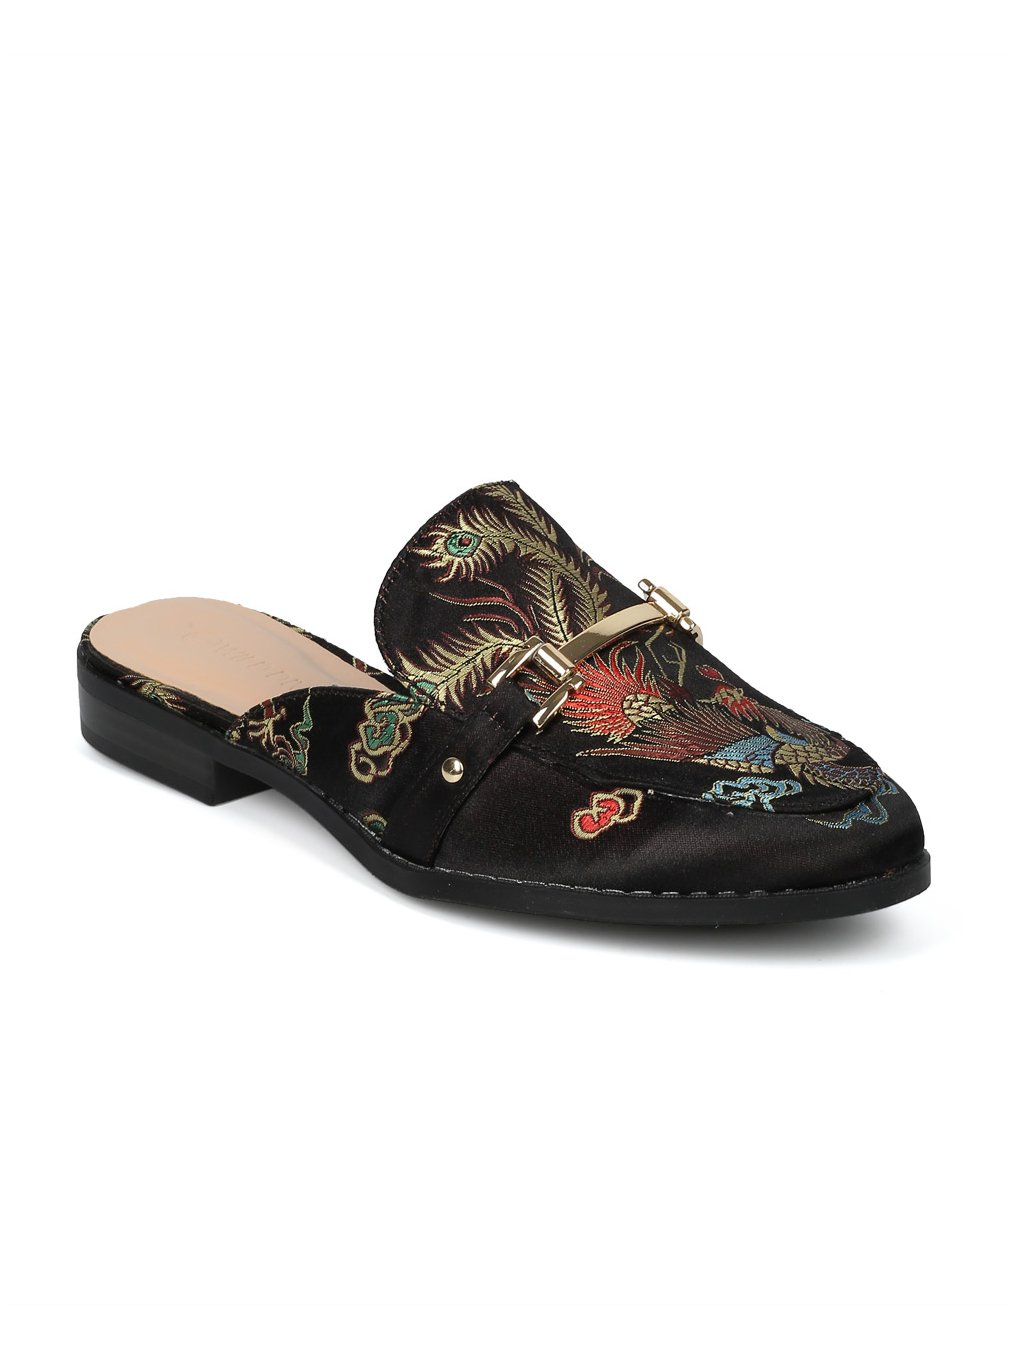 Women Satin Brocade Phoenix Horsebit Loafer Slide HF84 - Black Satin (Size: 6.5)